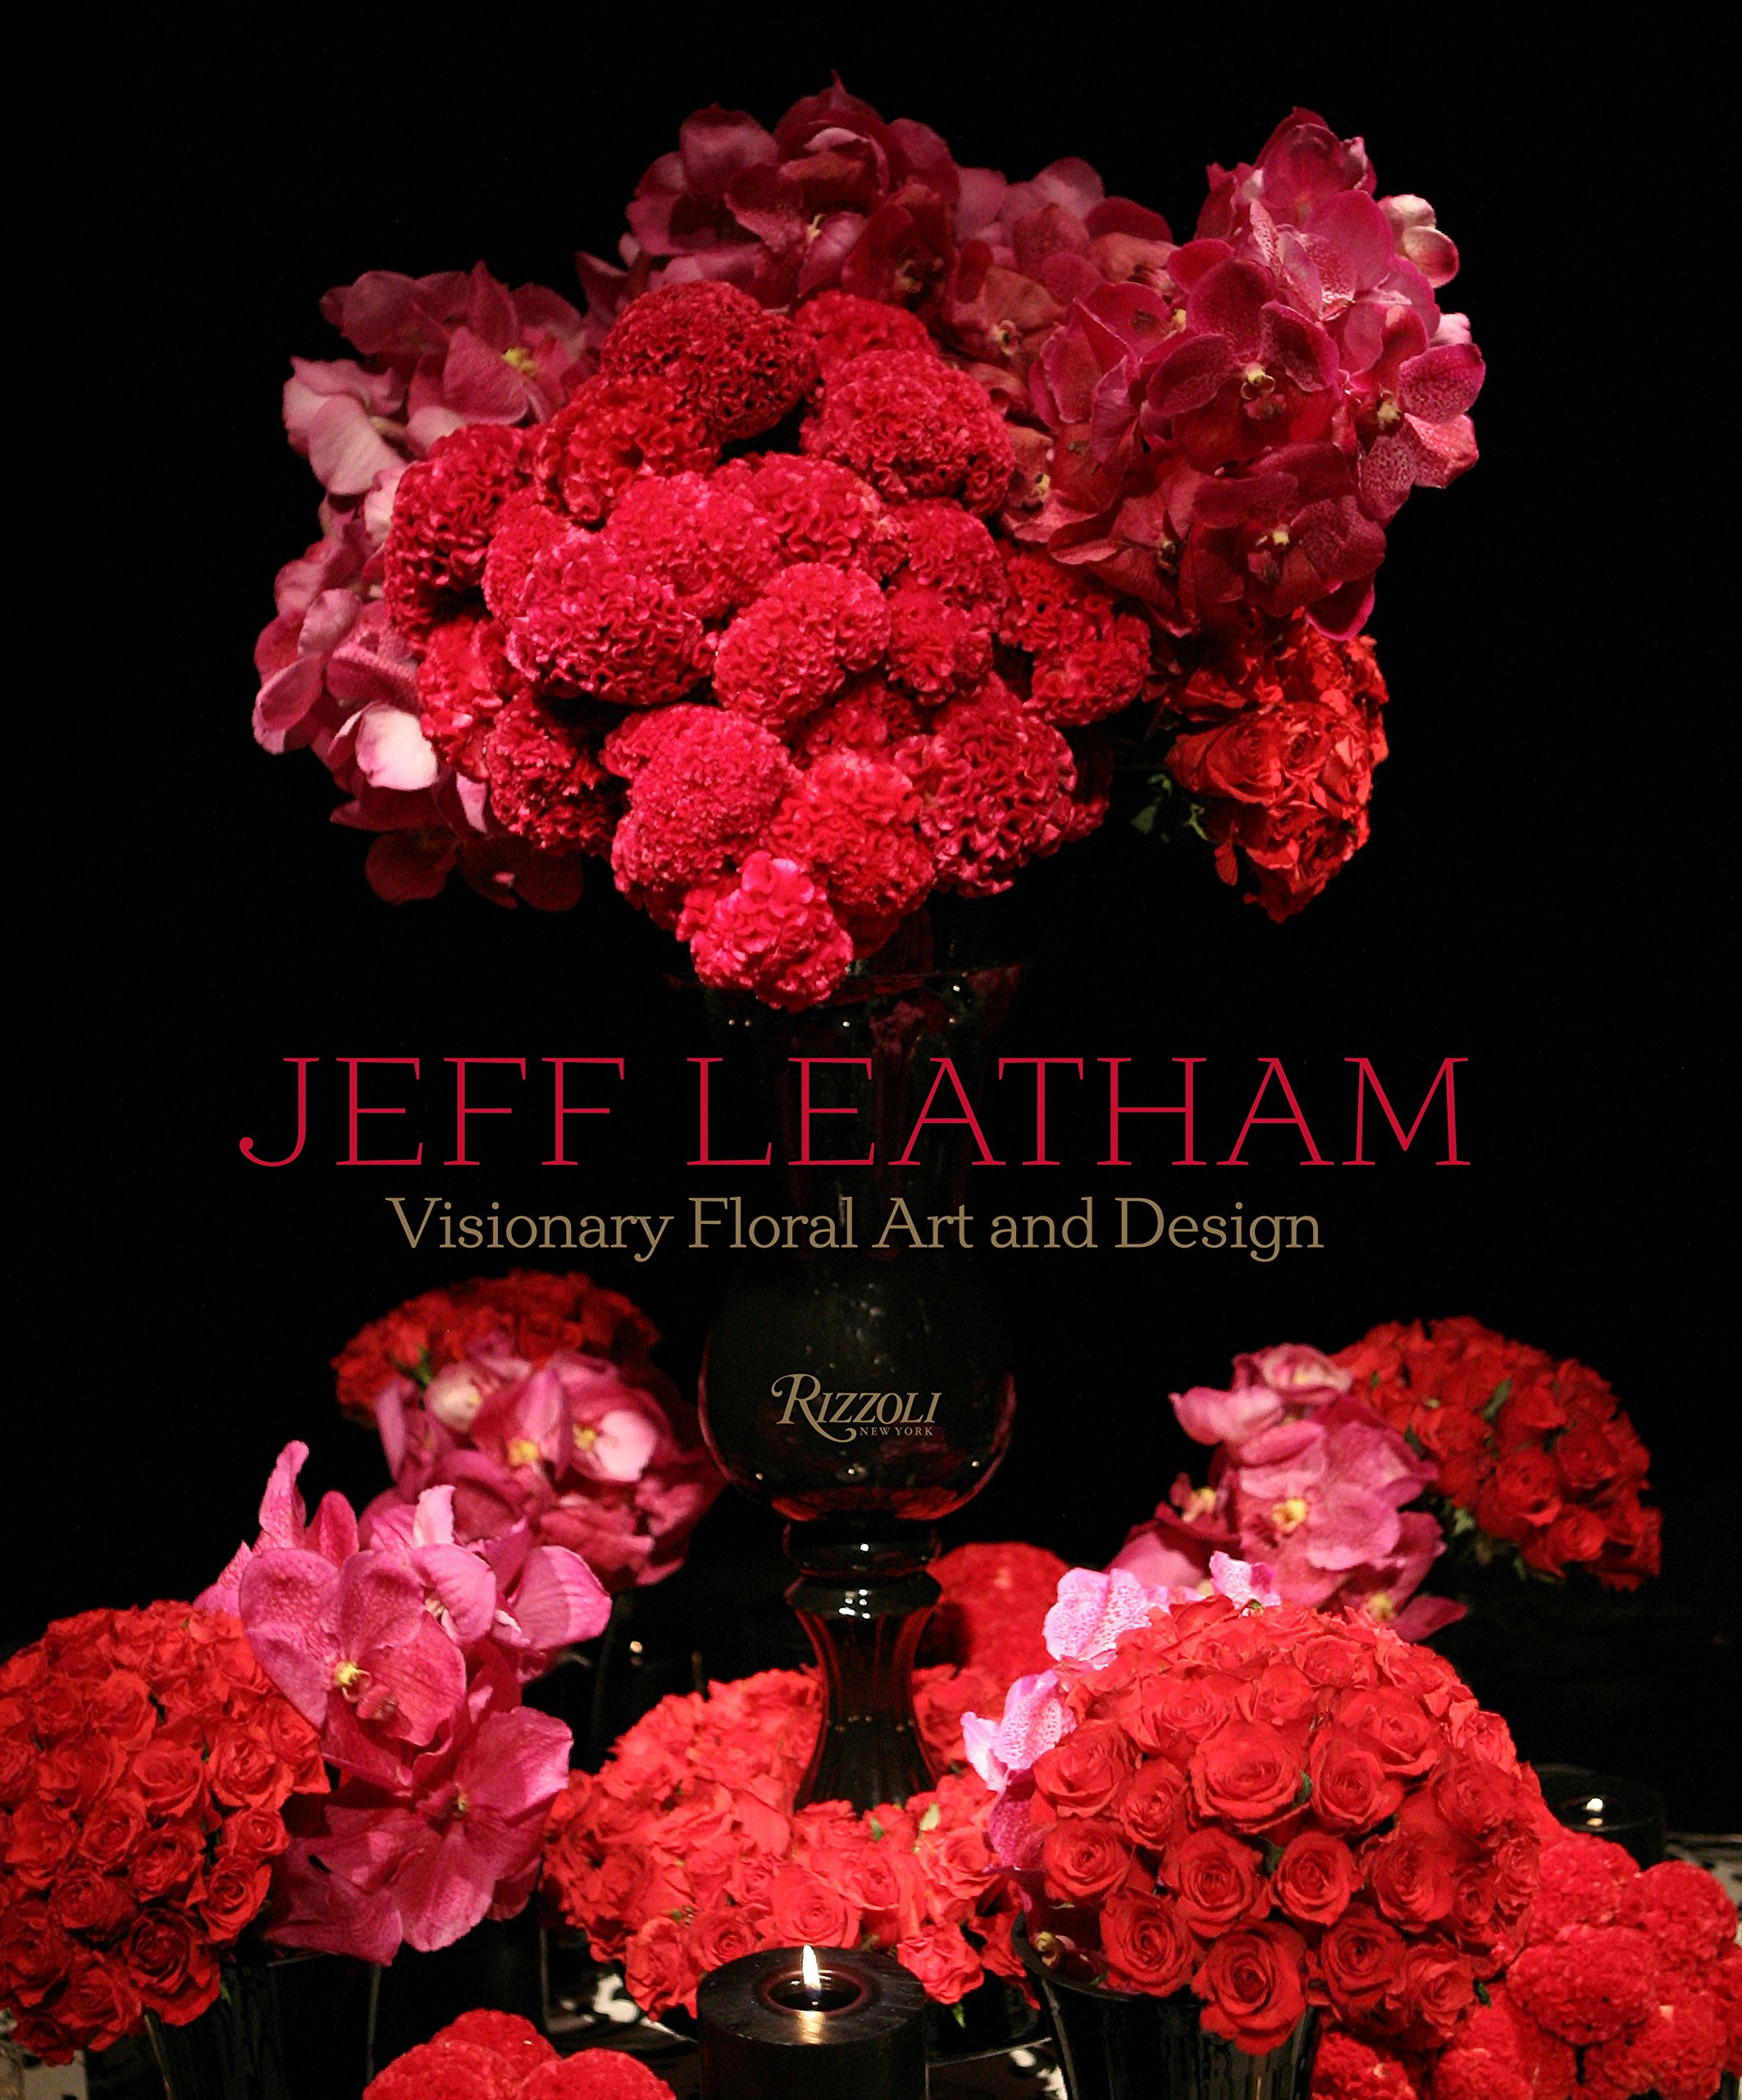 Jeff Leatham: Visionary Floral Art and Design by Rizzoli (Image #2)